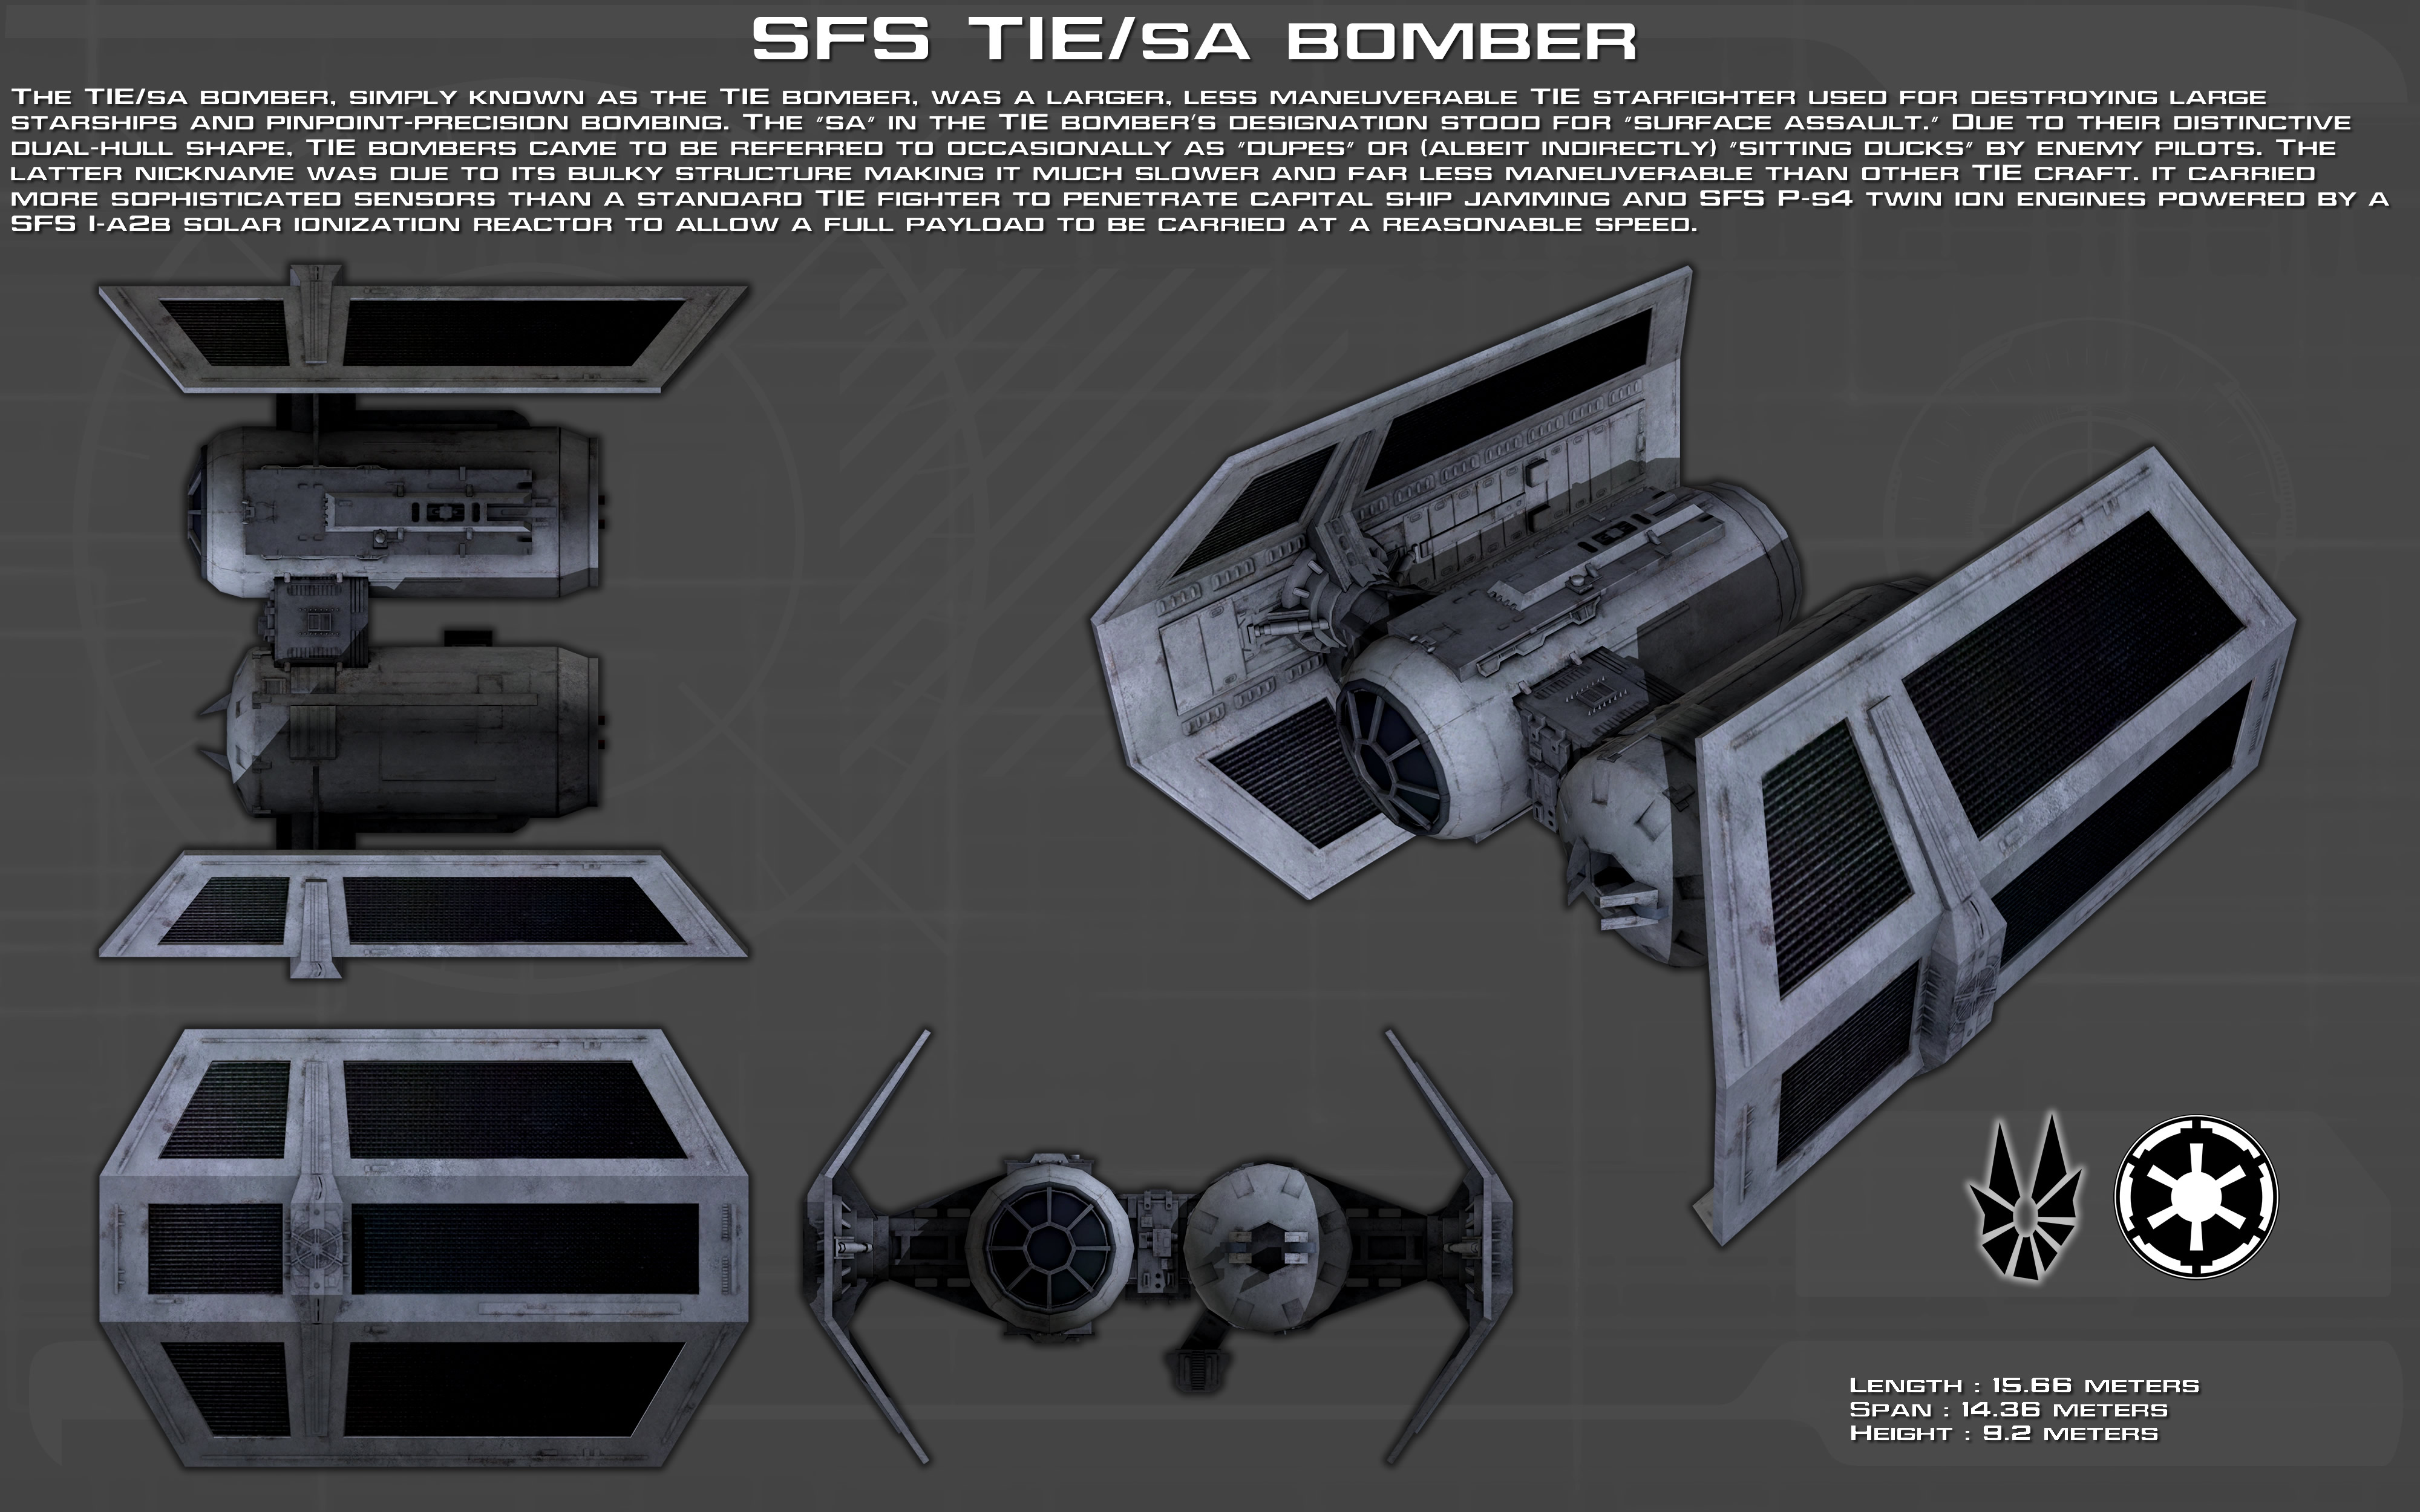 SFS TIE/Sa Bomber ortho [Updated] by unusualsuspex